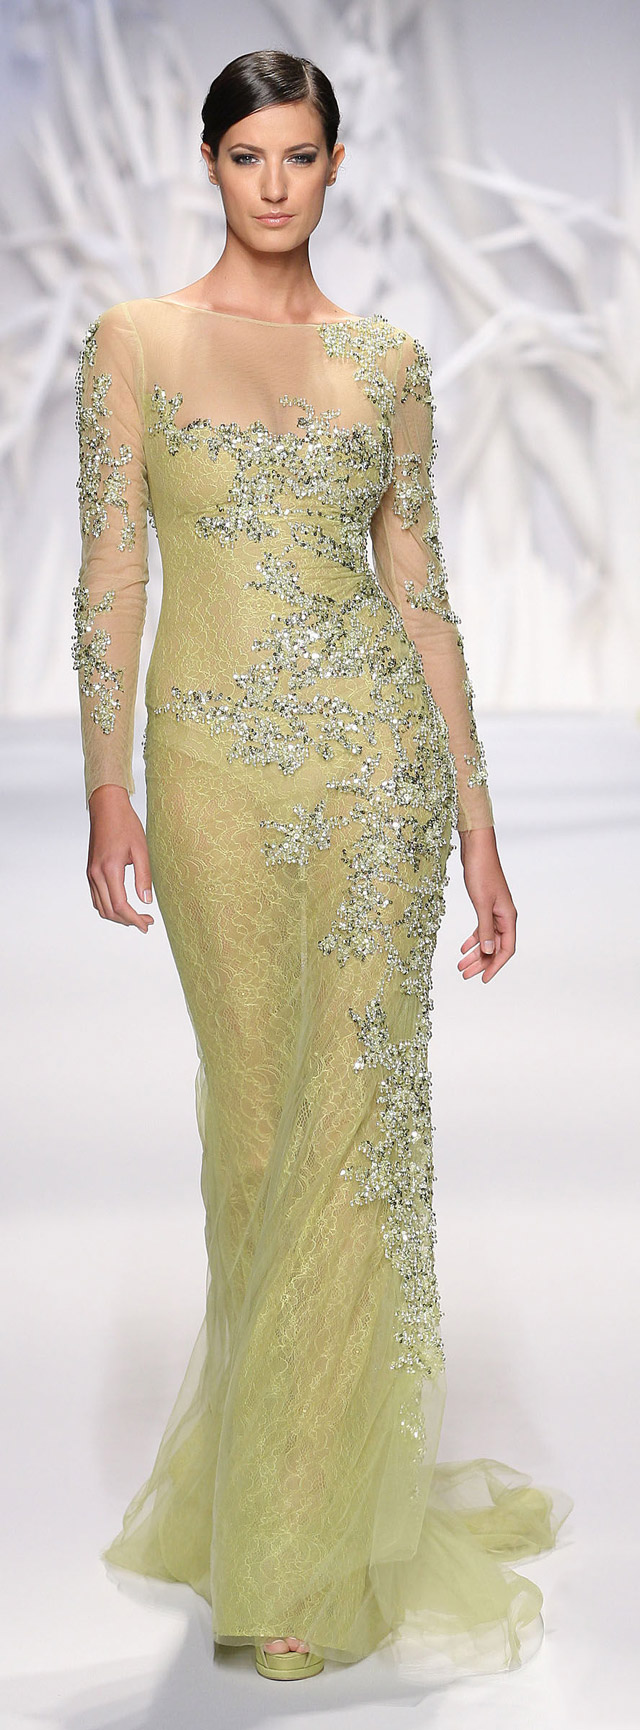 Abed Mahfouz Haute Couture Fall-Winter 2013-2014 (4)